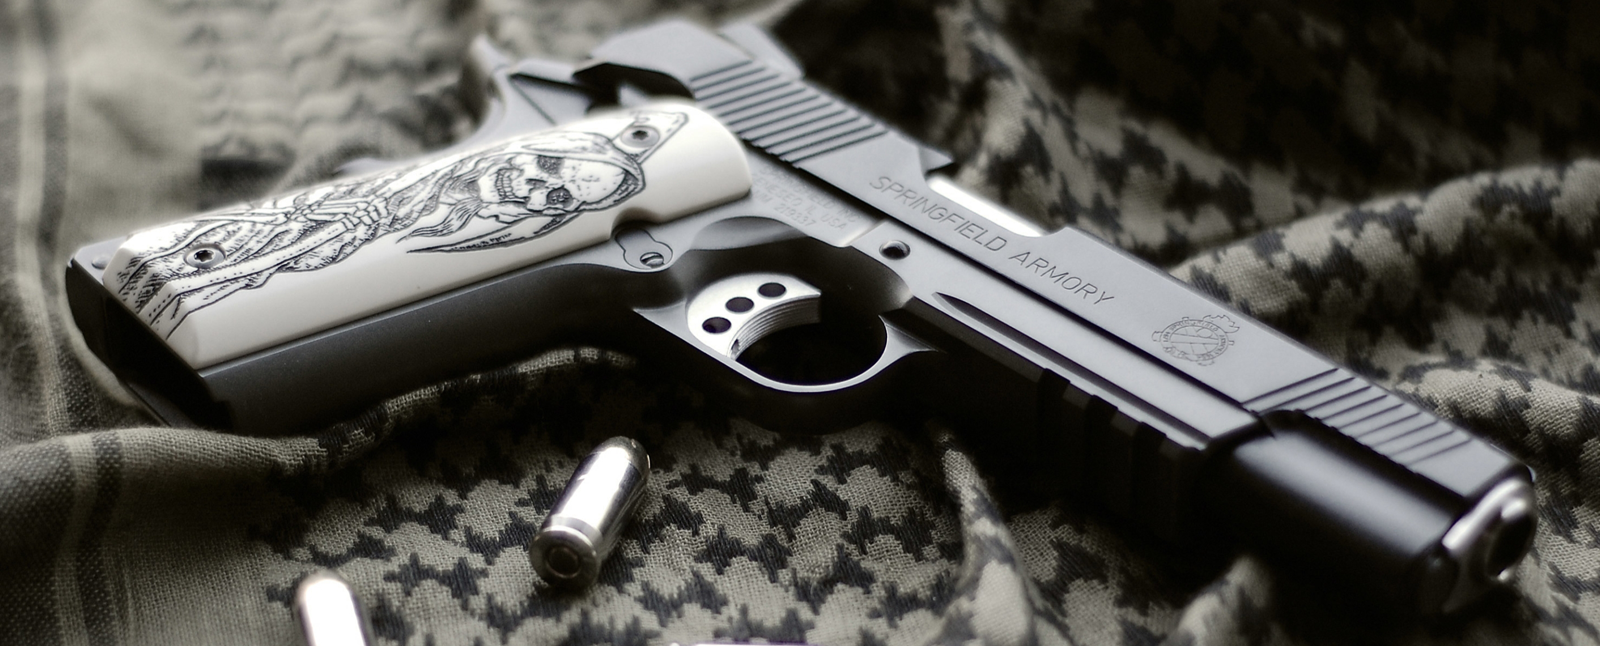 What else do I need to know about buying a pistol from a private dealer?